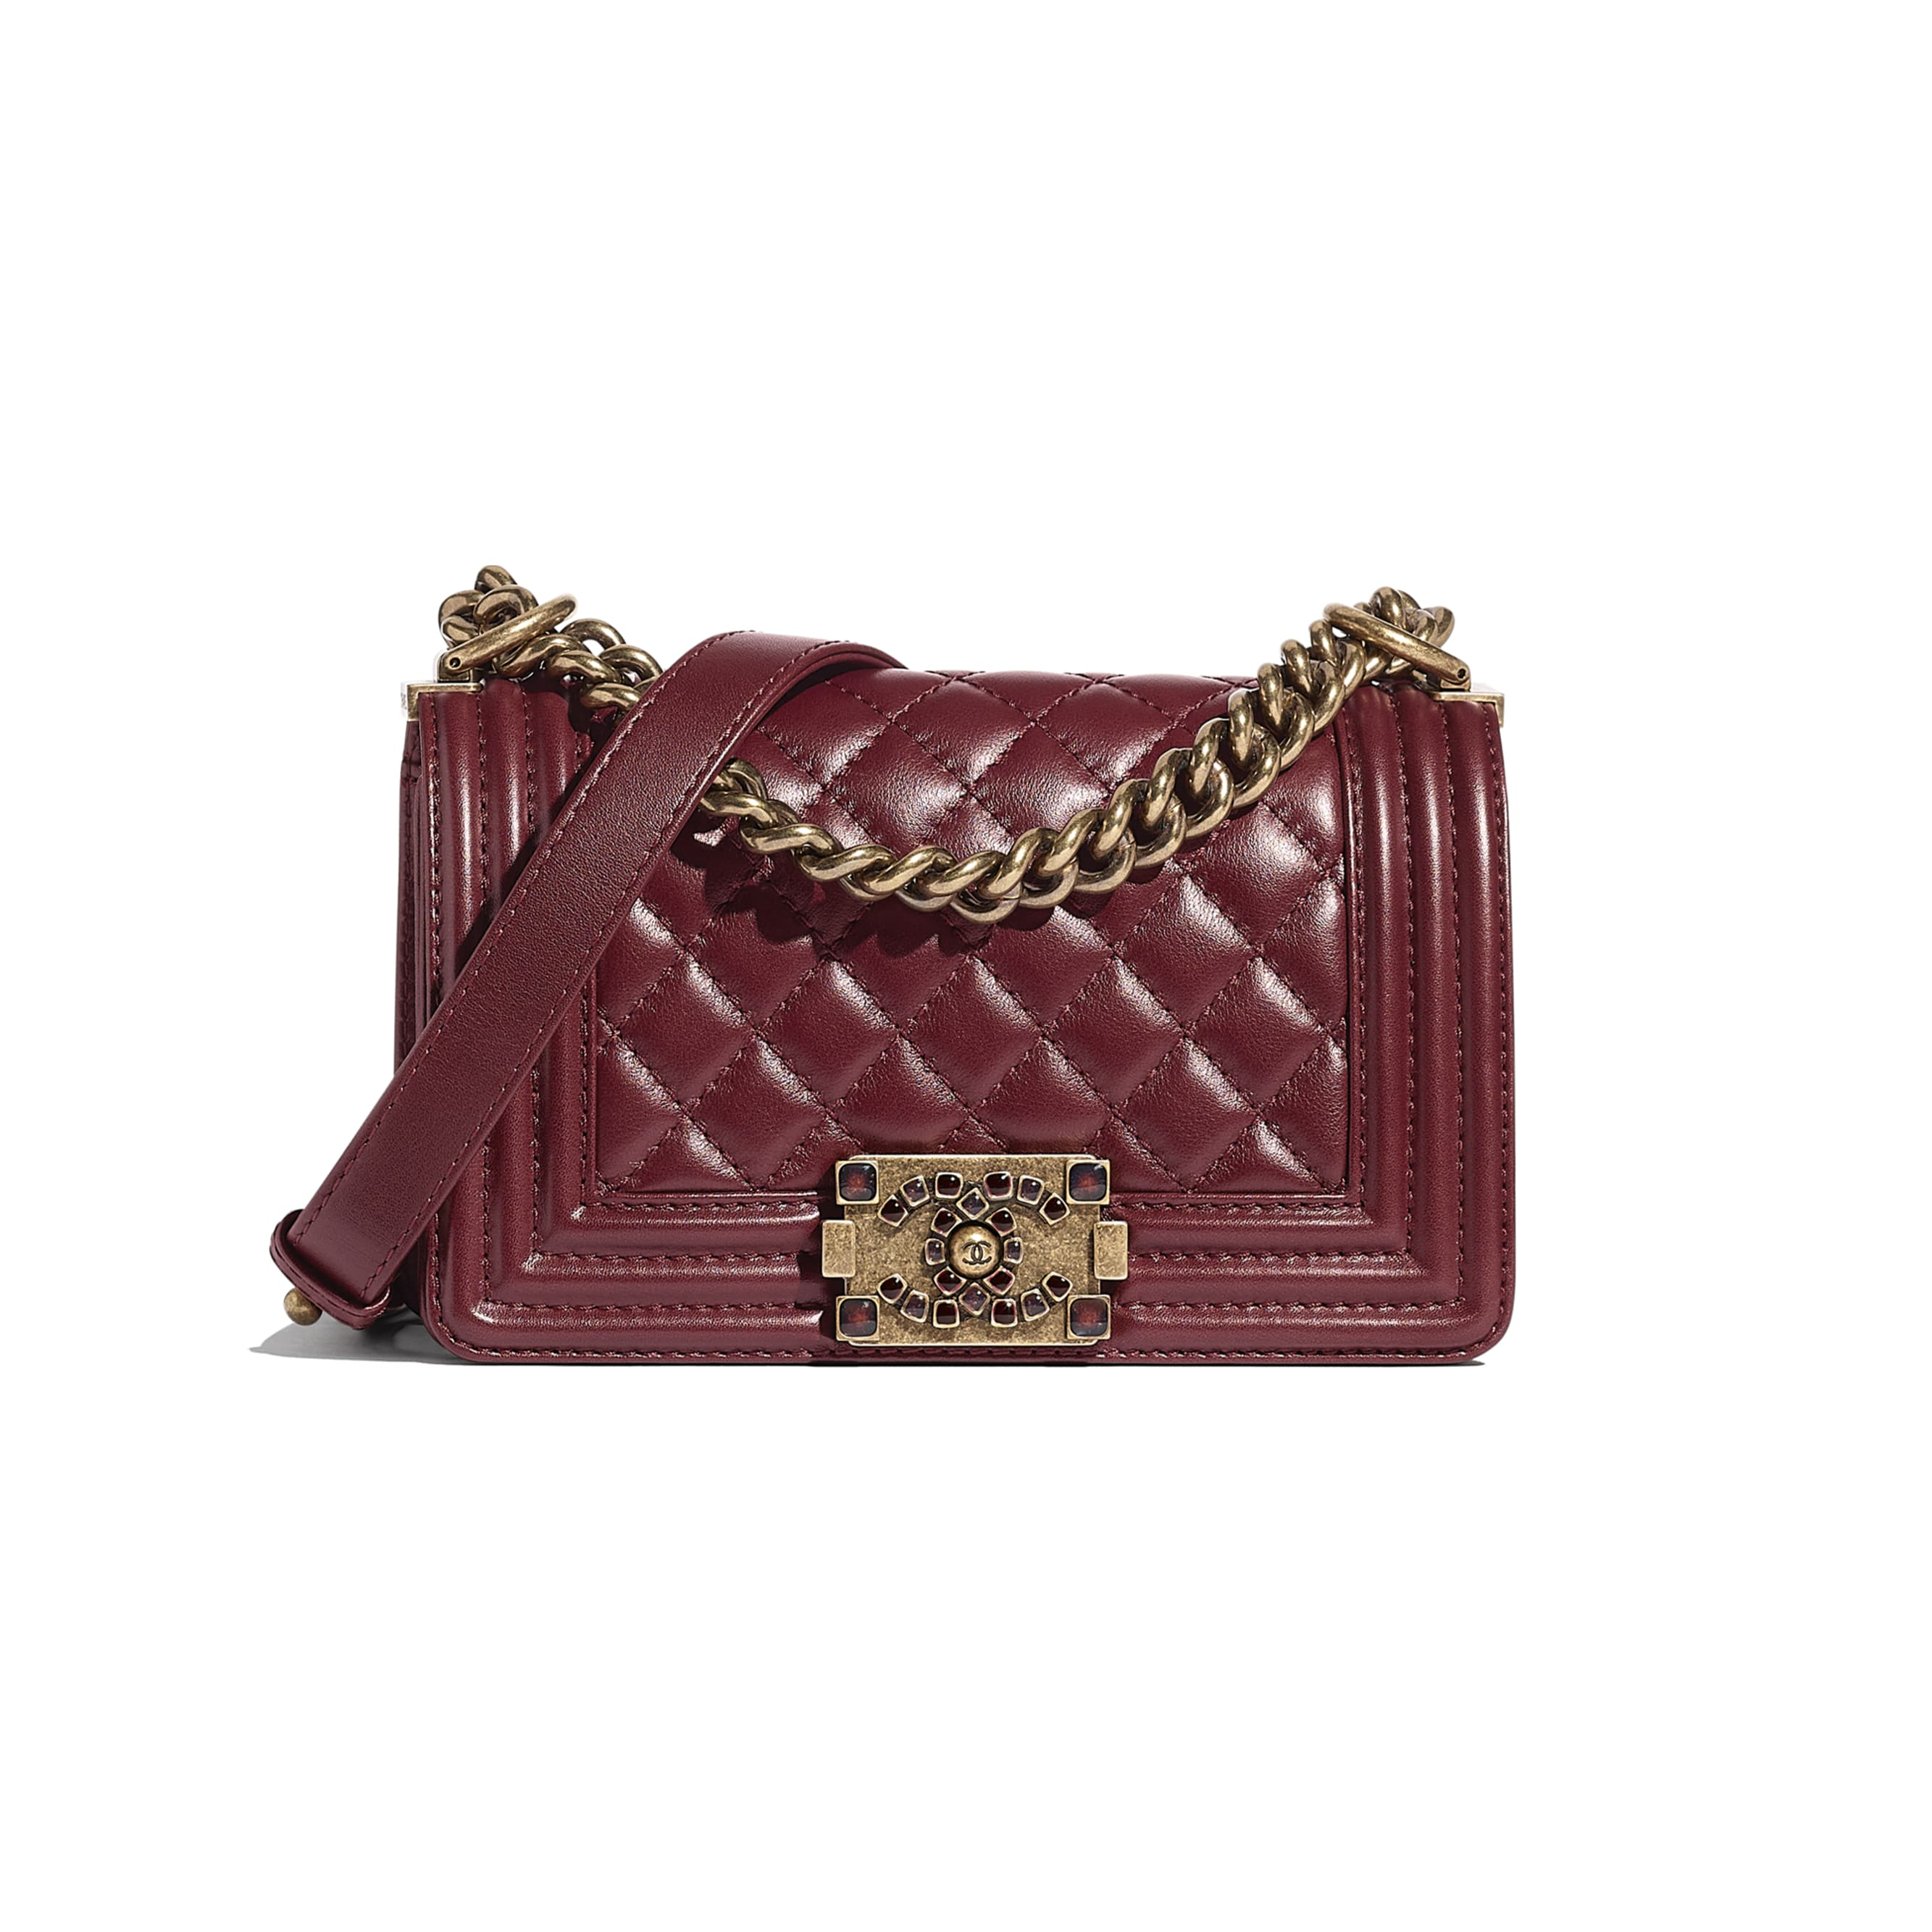 Small BOY CHANEL Handbag - Burgundy - Calfskin & Aged Gold-Tone Metal - CHANEL - Default view - see standard sized version